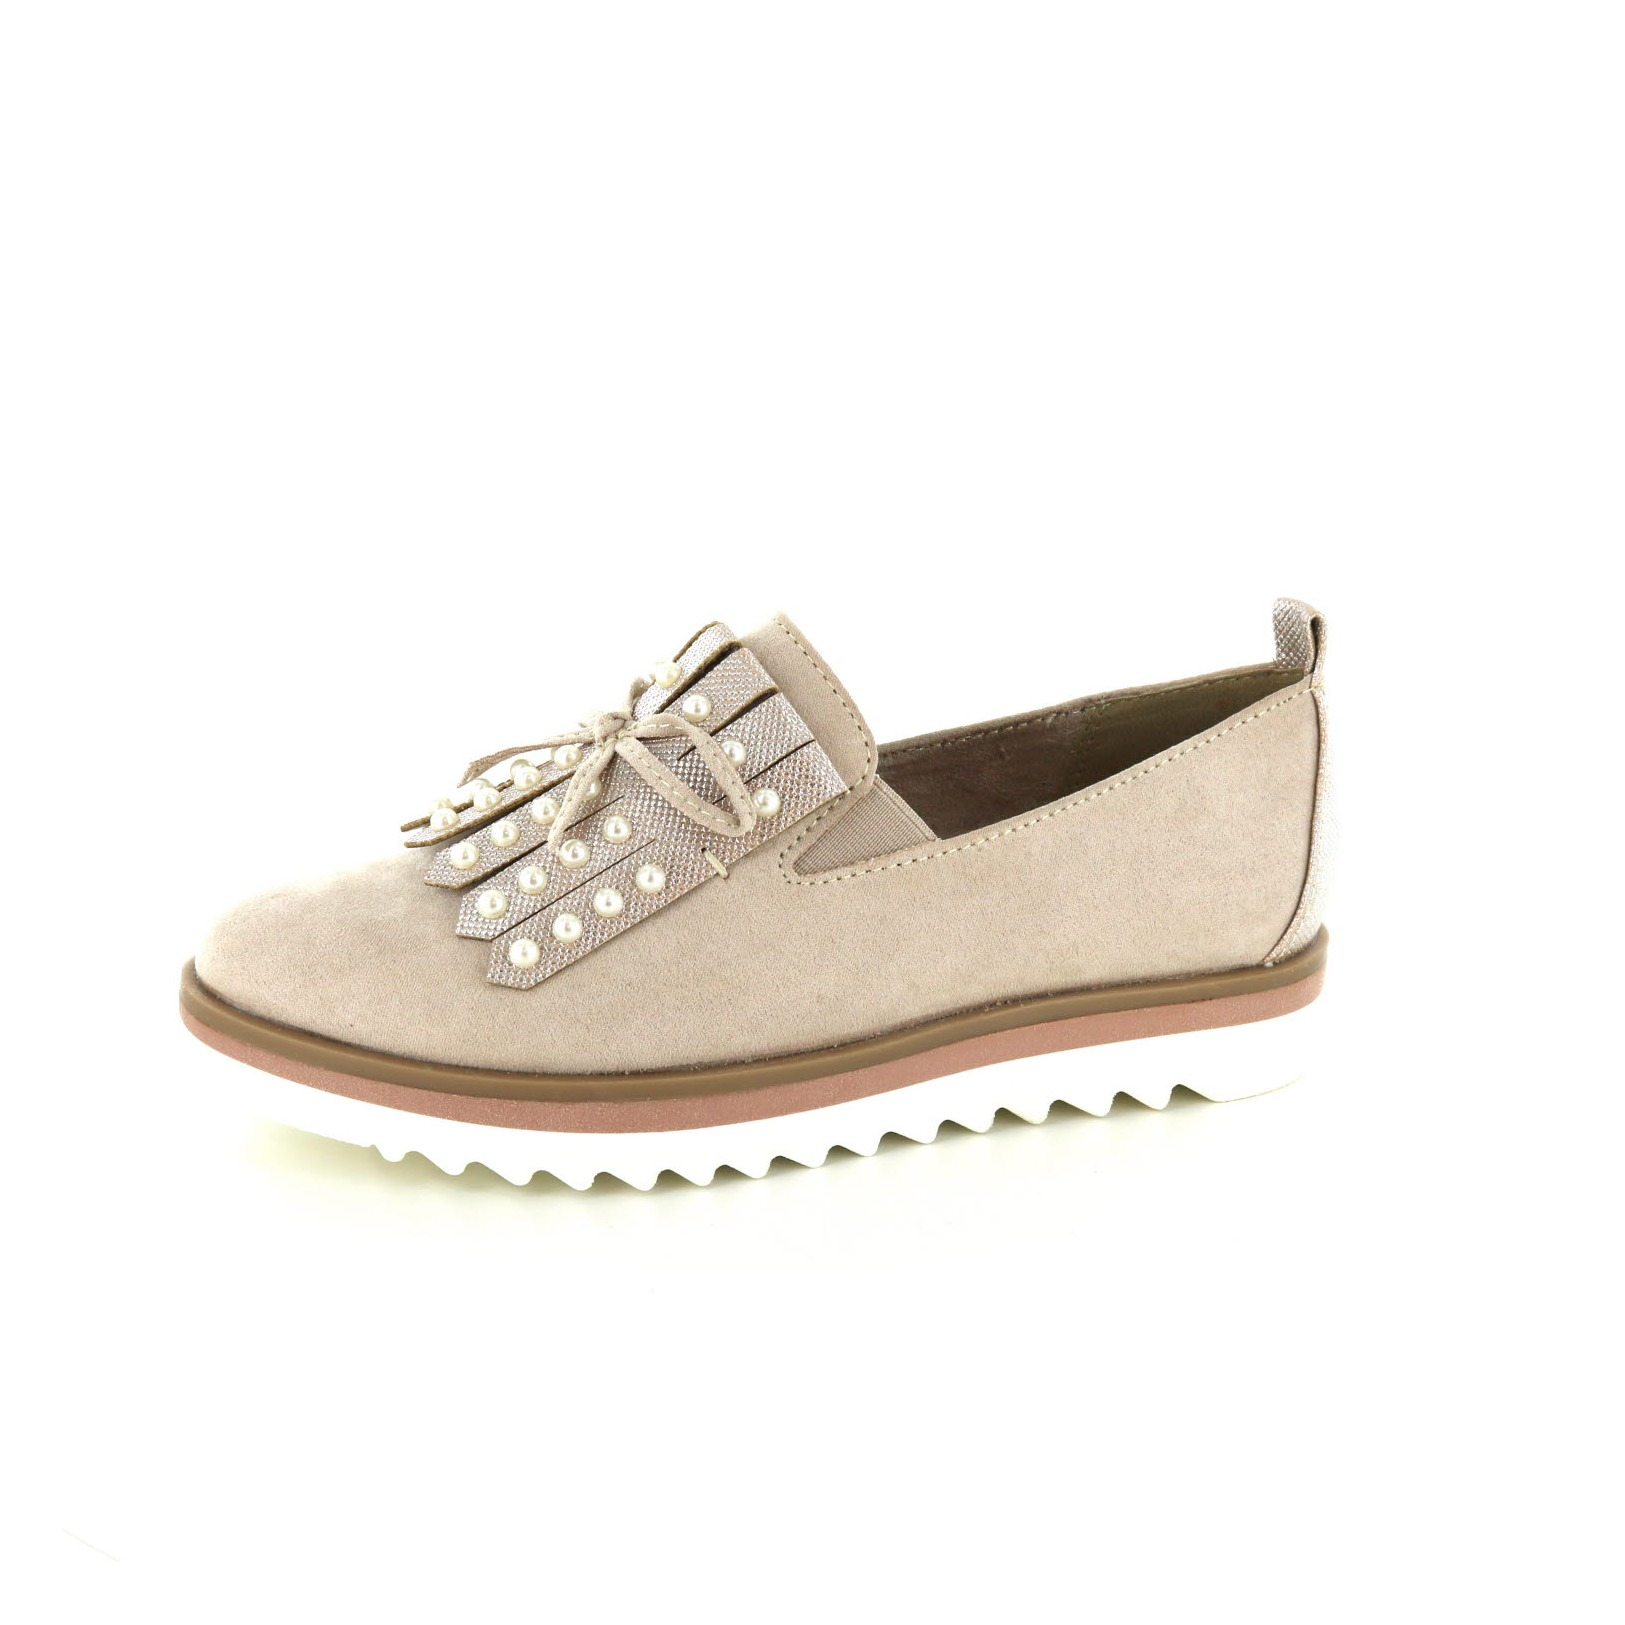 MARCO TOZZI   Mocassins   Chaussures dames   Chaussures   Ralet ea317a2db9db